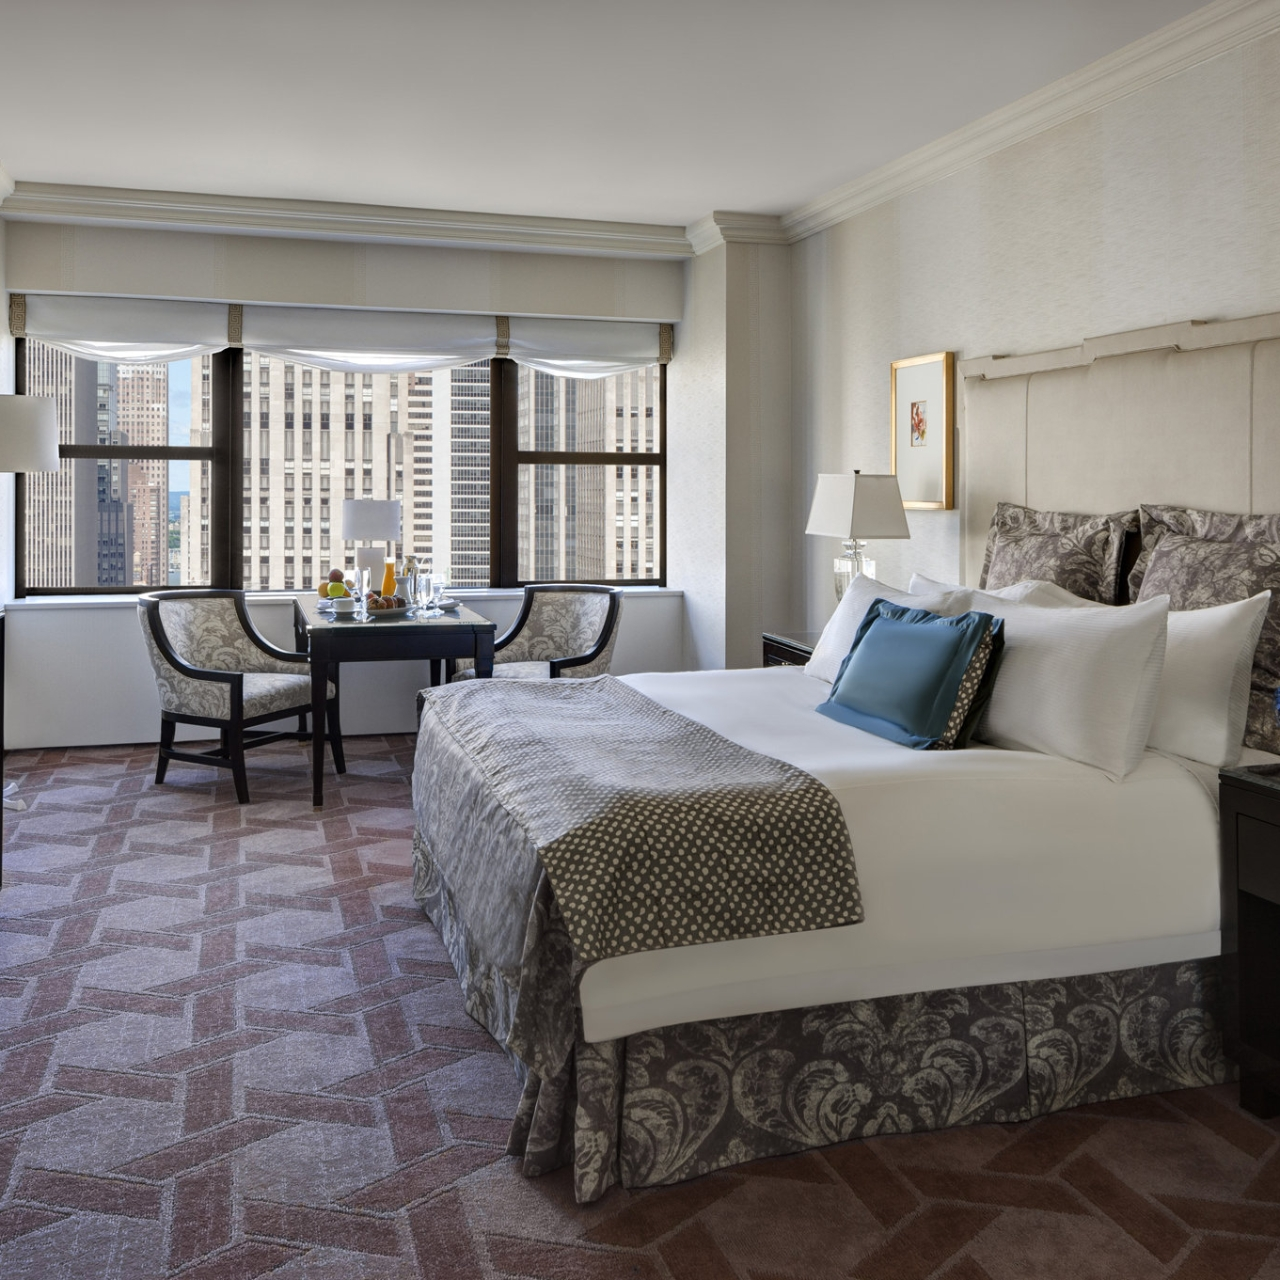 Hotel Lotte New York Palace New York New York At Hrs With Free Services